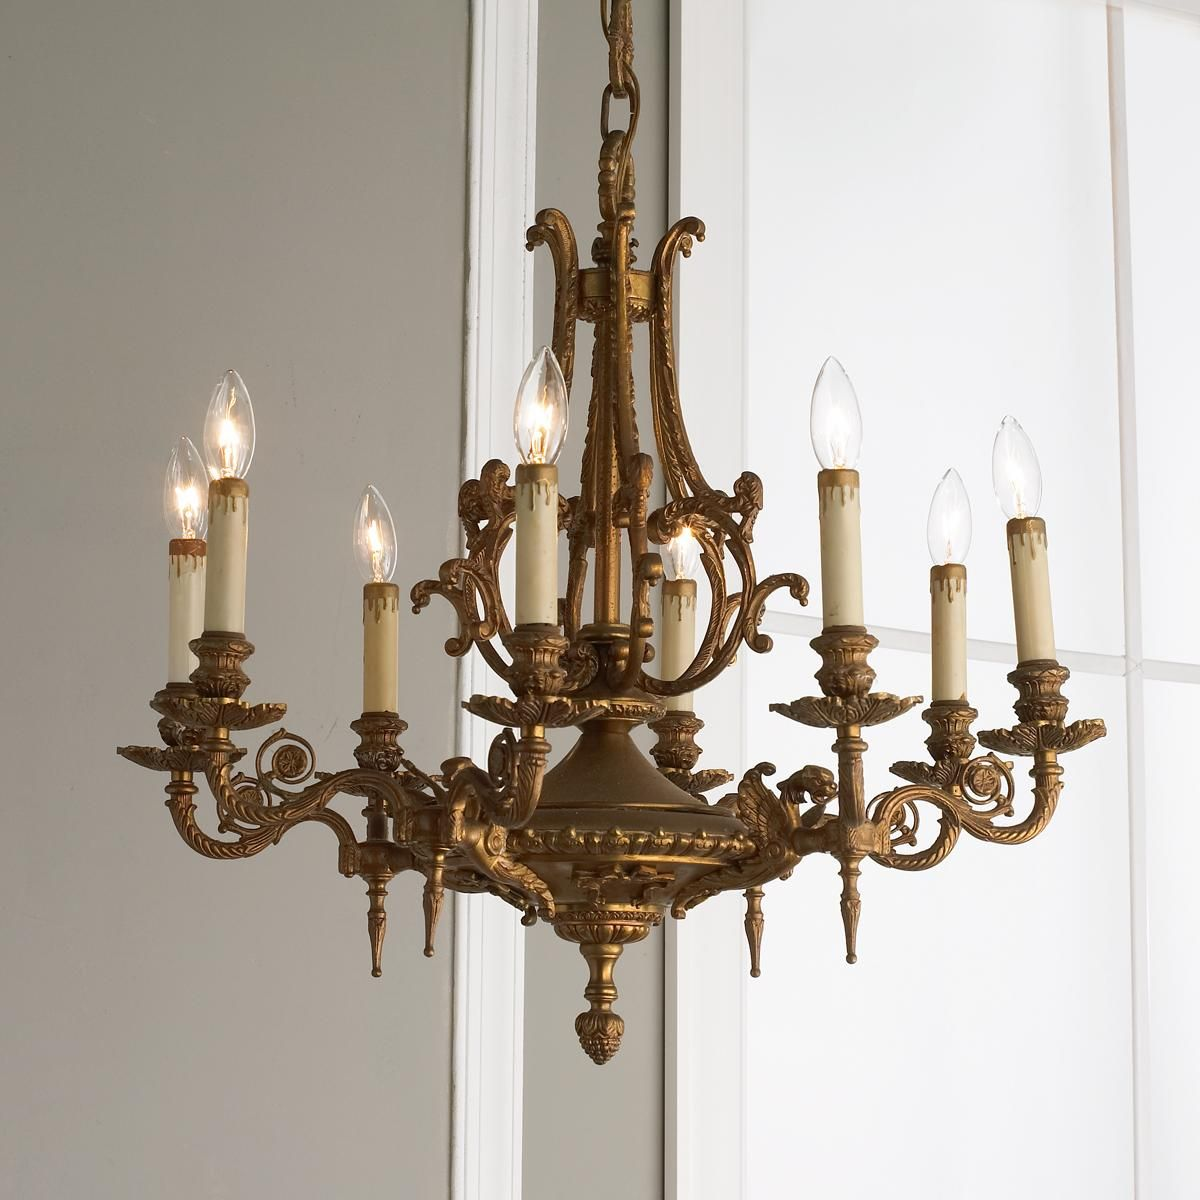 Antique griffin 8 light brass chandelier i love antique lighting antique griffin brass chandelier gathering room or master bedroom aloadofball Image collections